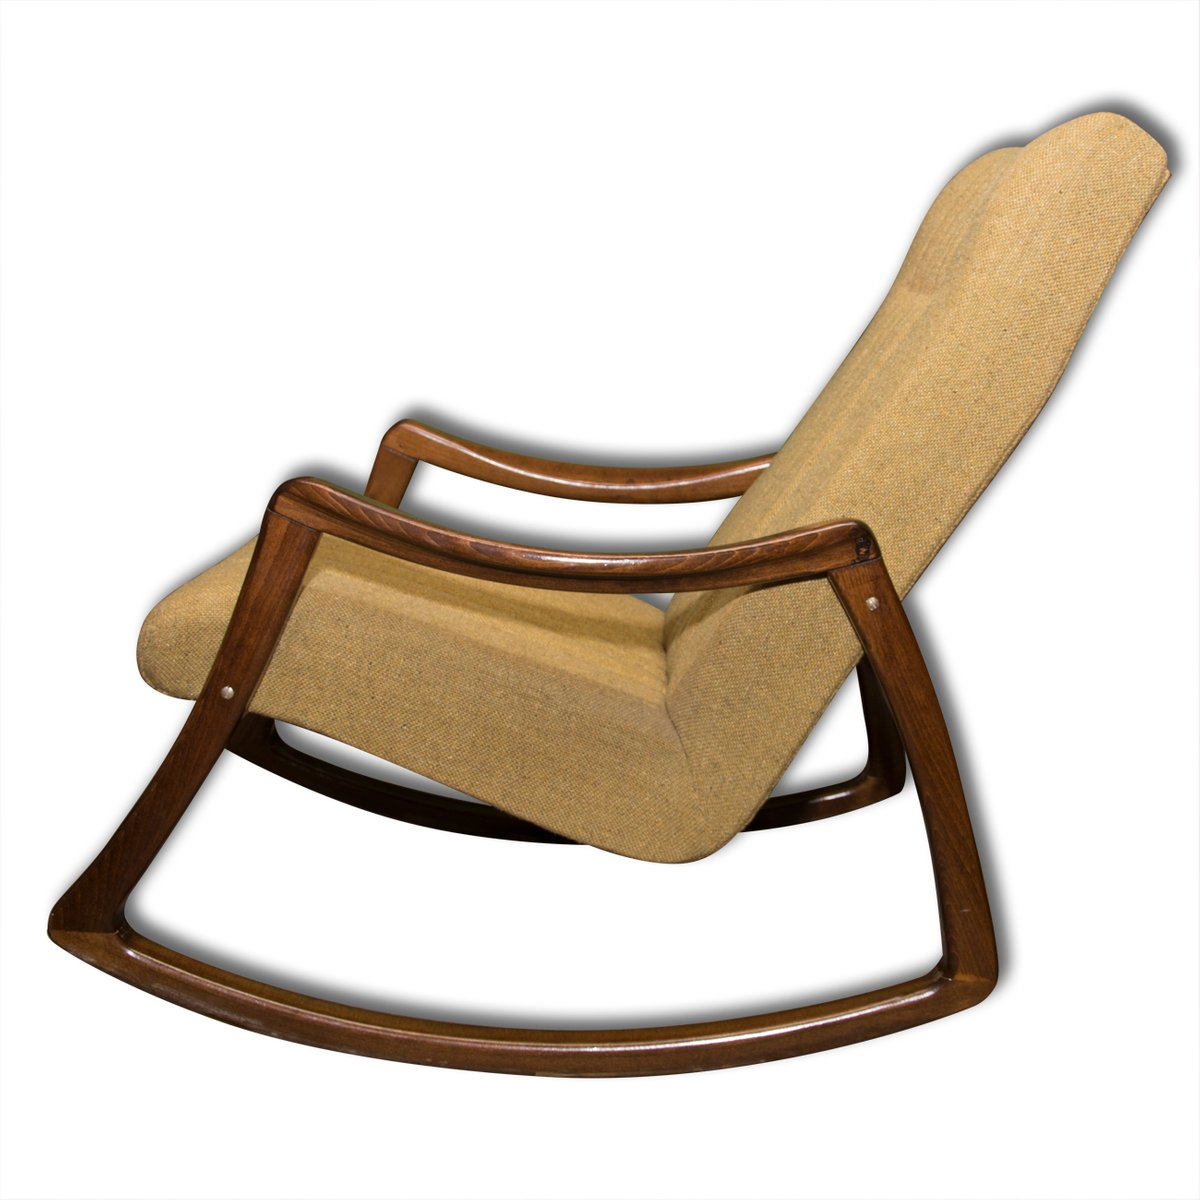 Vintage Czech Bentwood Rocking Chair From TON, 1970s 7. $1,347.00. Price  Per Piece